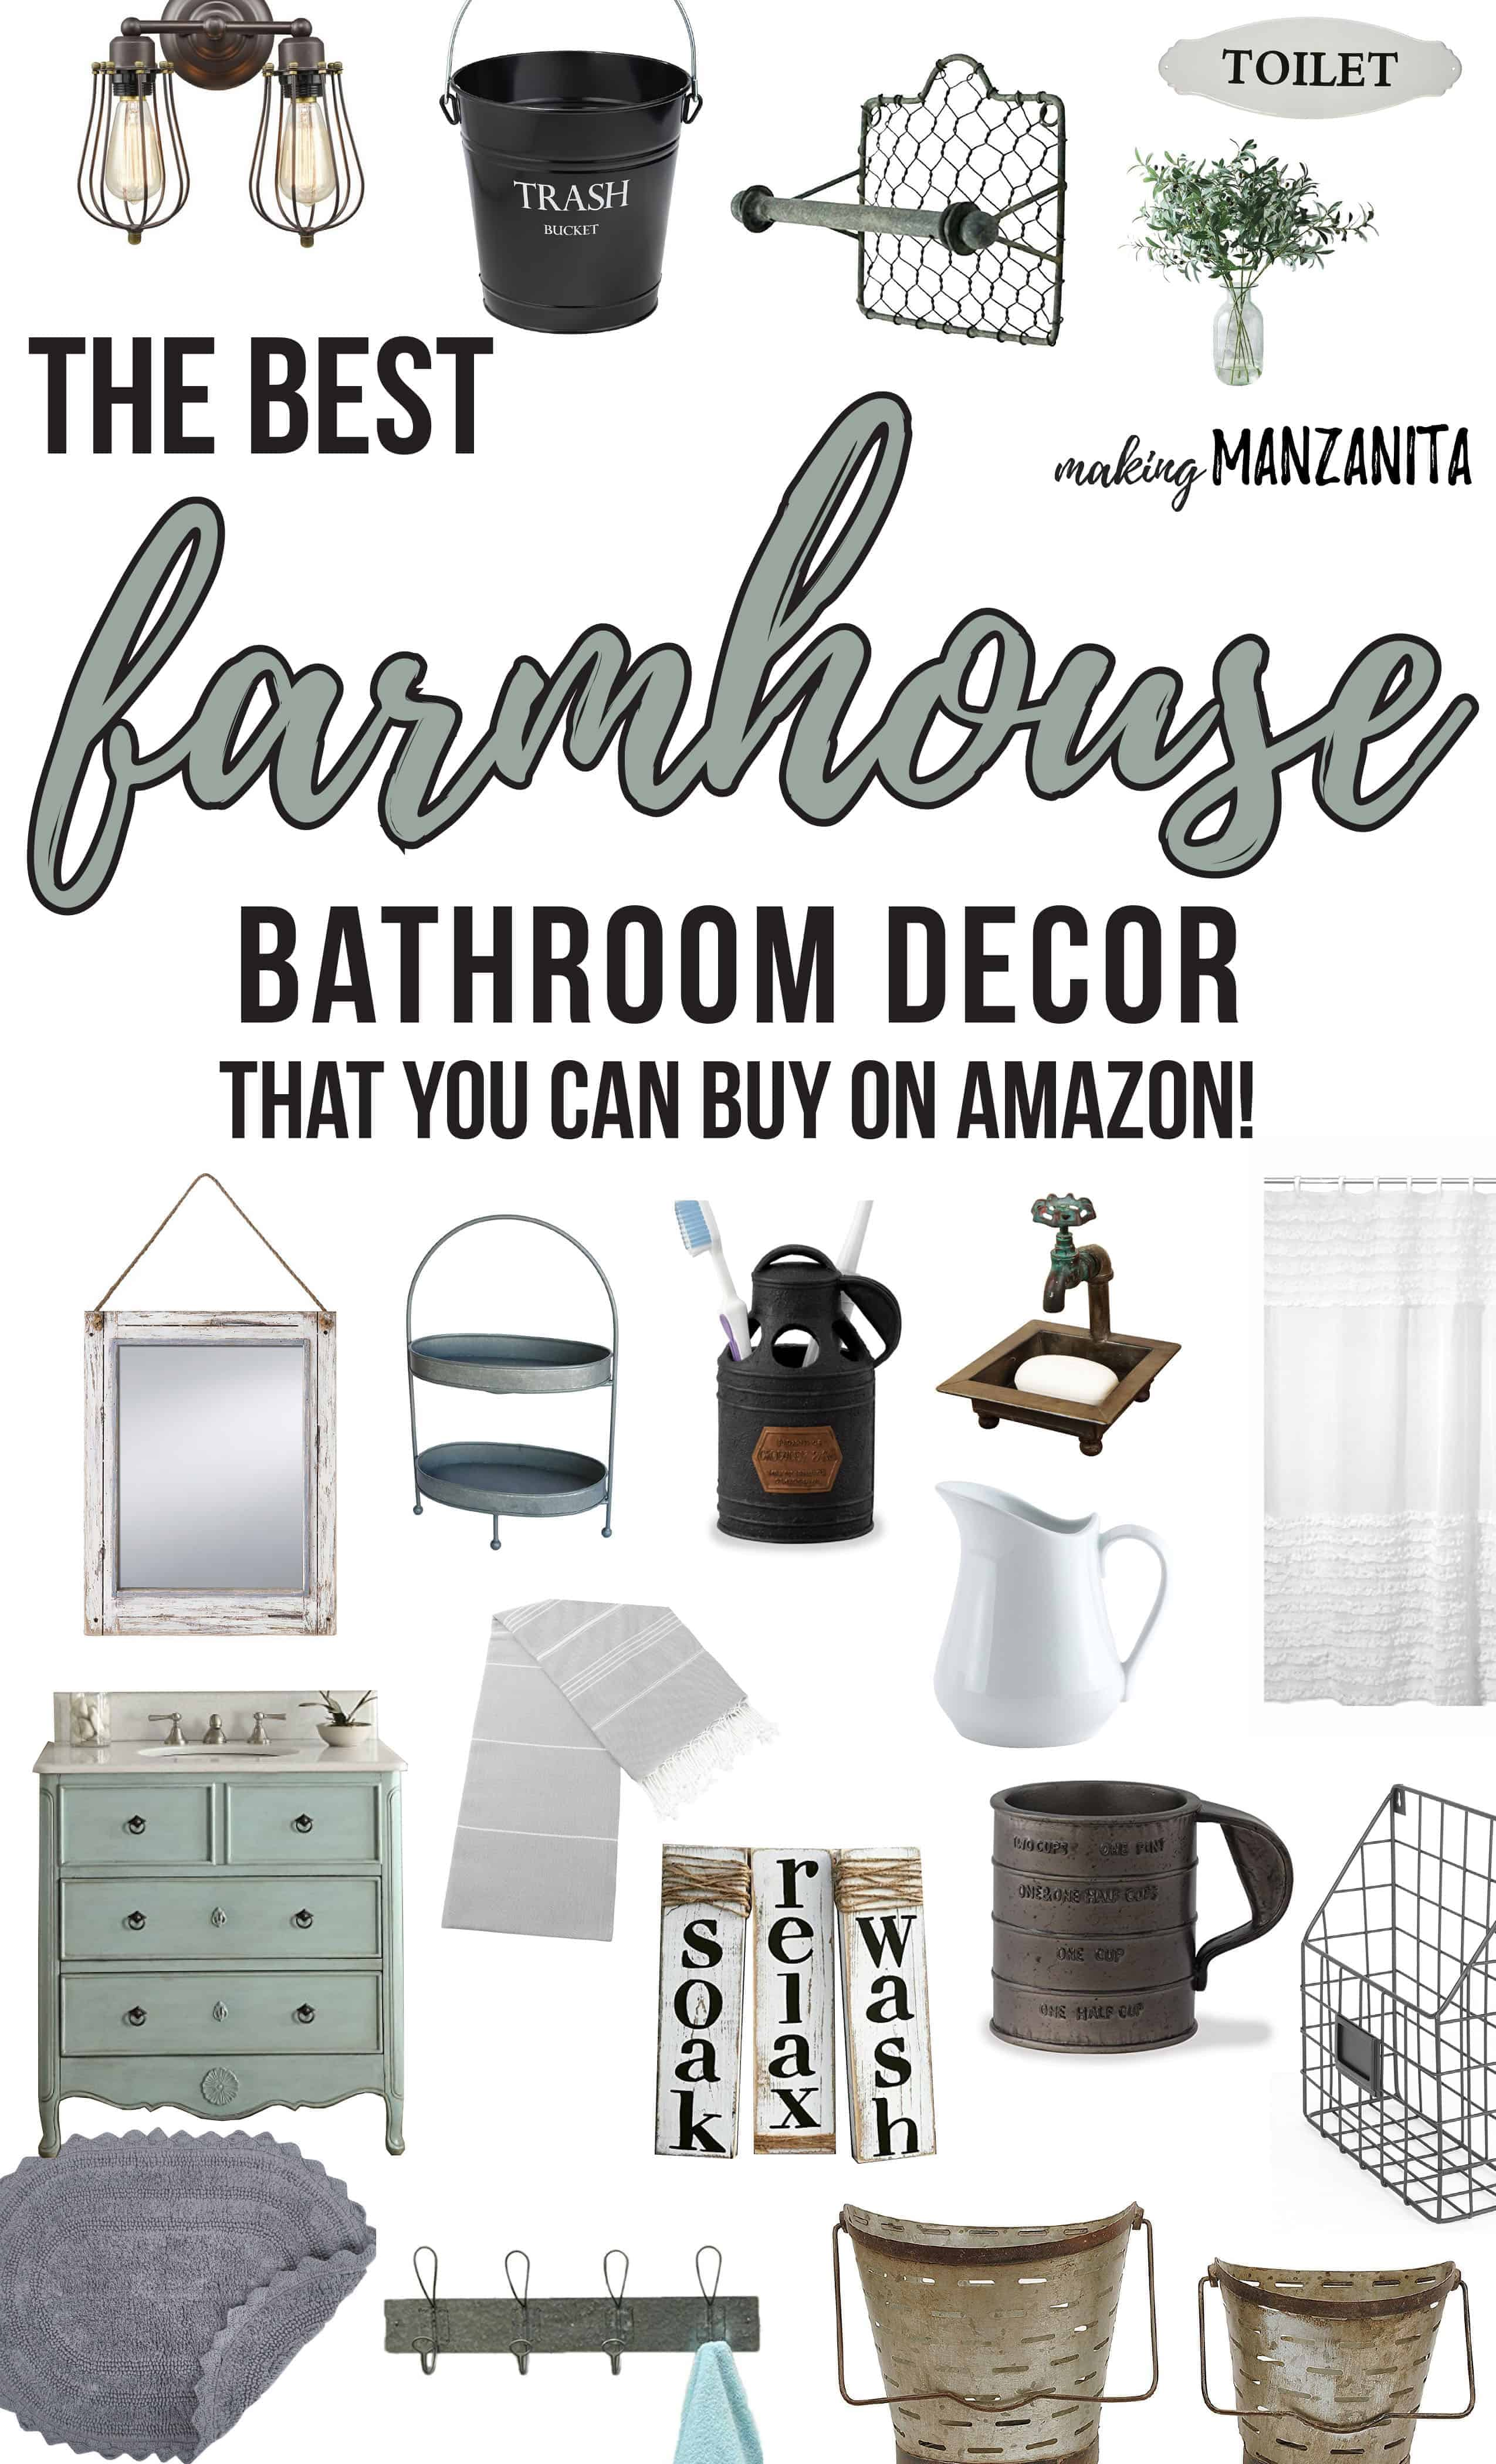 The Best Farmhouse Bathroom Decor That You Can Buy On Amazon! | Farmhouse Decor for Bathrooms | How to decorate bathrooms in farmhouse style | Fixer Upper Bathroom | Bathrooms That Look Like Fixer Upper | Get the fixer upper look in your bathroom | Where to buy farmhouse decor | Bathroom in Farmhouse Style | Farmhouse Decor Buying Guide | Shopping Guide for Bathrooms | Decorating in the farmhouse style | Farmhouse trend | Bathroom Decorations | Bathroom Lighting | Olive Buckets | Farmhouse Vanity Cabinet